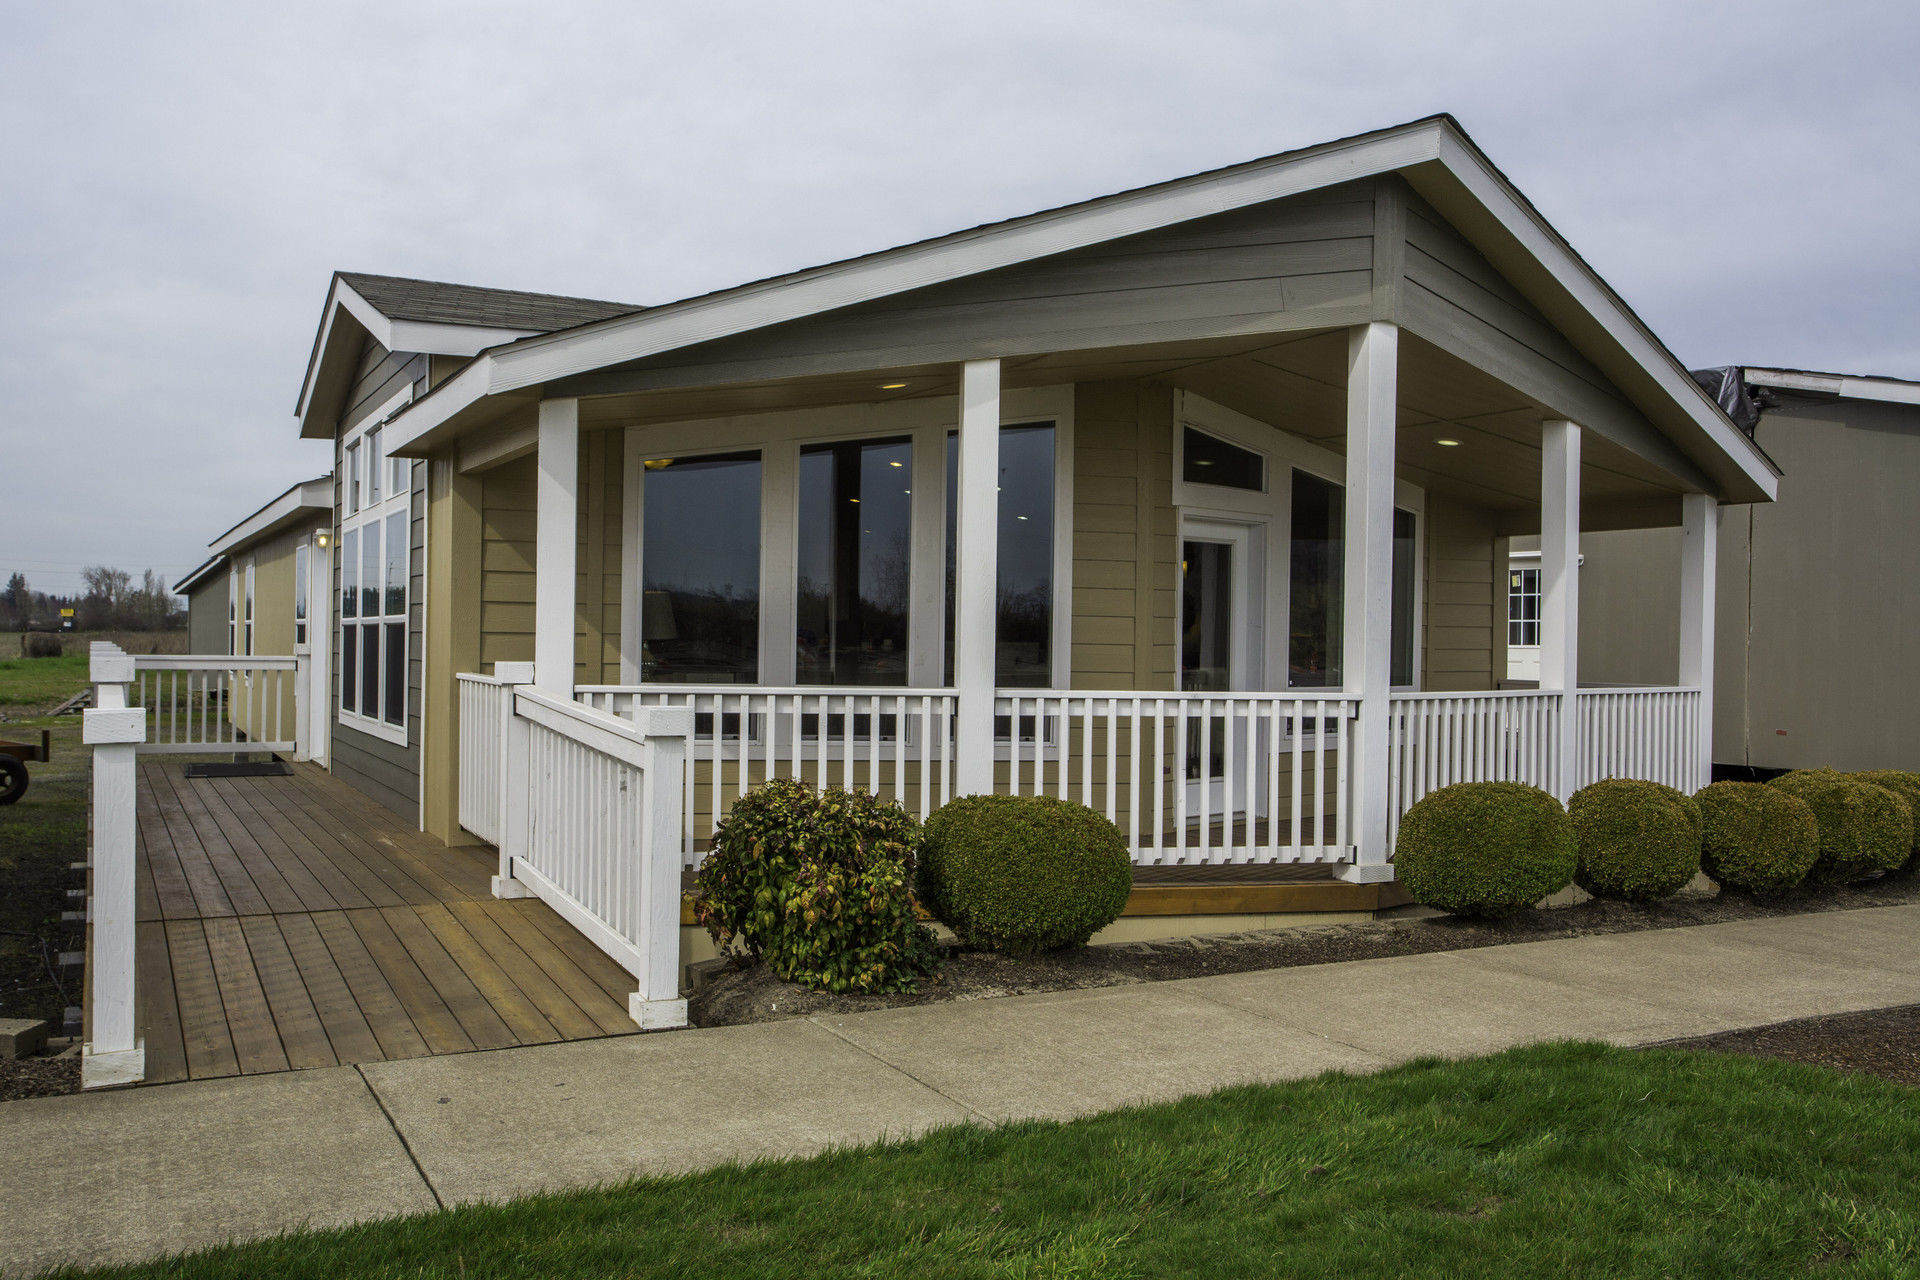 Metolius cabin 2 bed 2 bath 1498 sqft affordable home for Cabin model homes